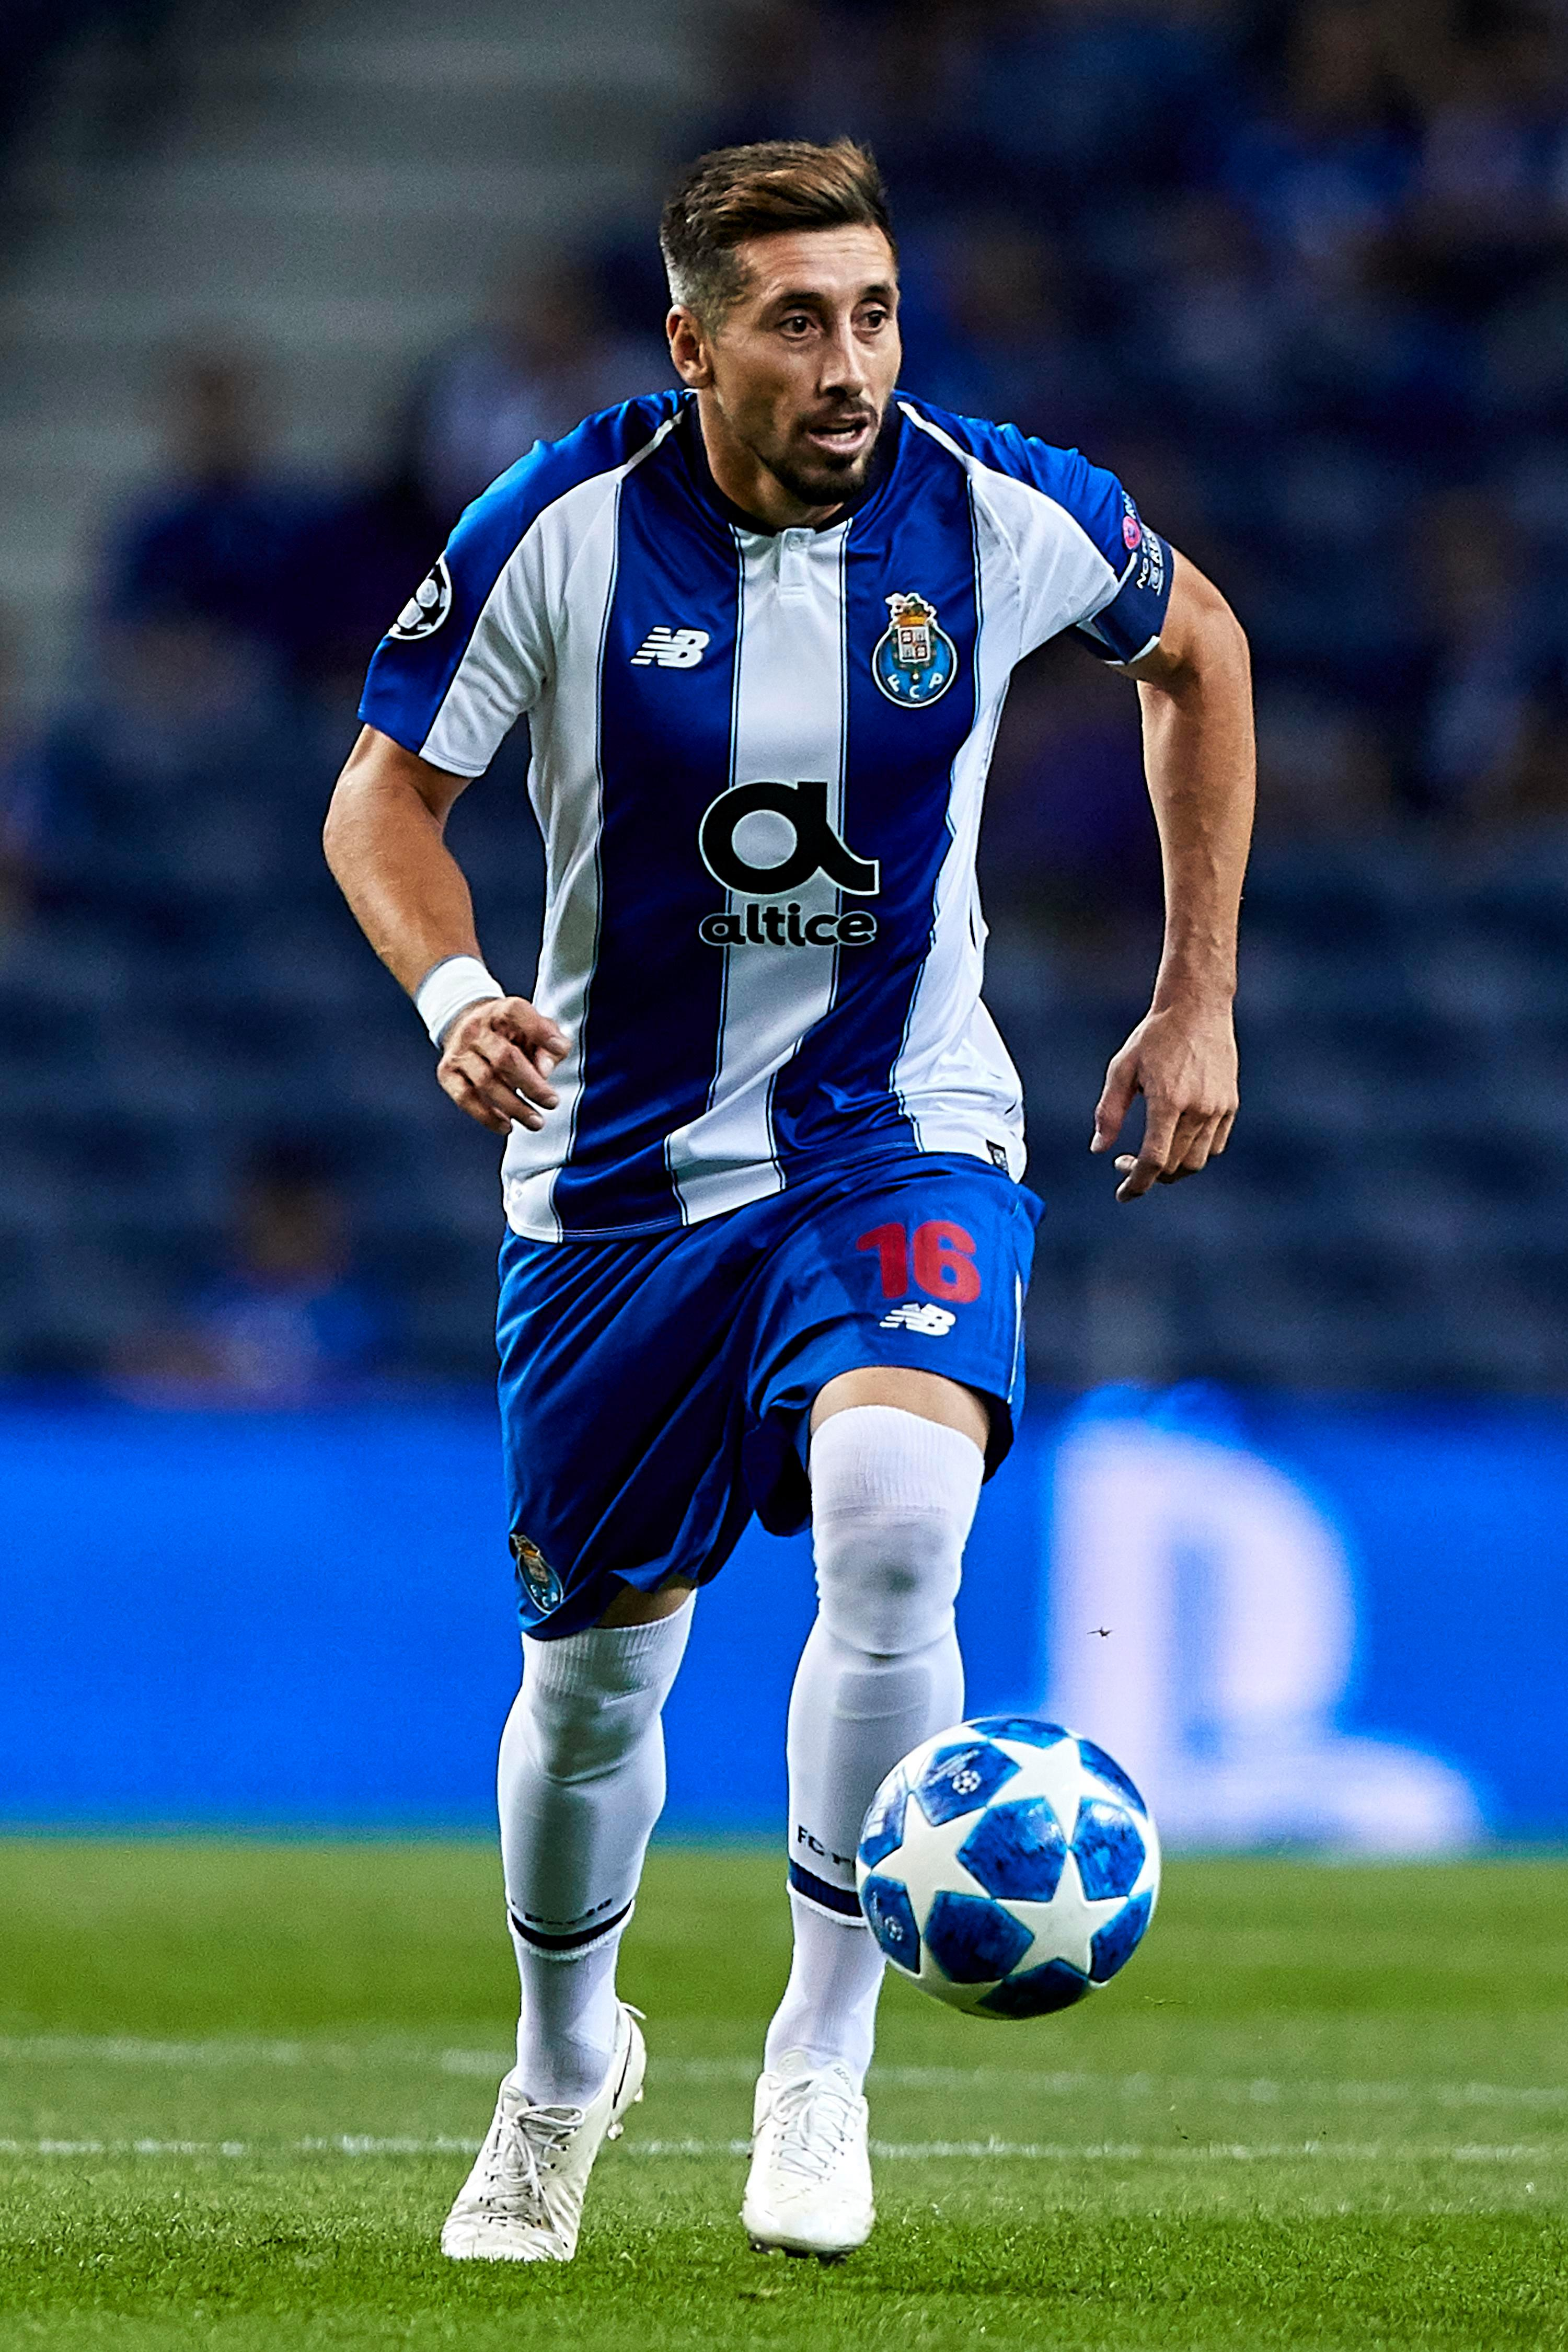 Porto midfielder Hector Herrera is a reported target for Arsenal with his contract soon to expire